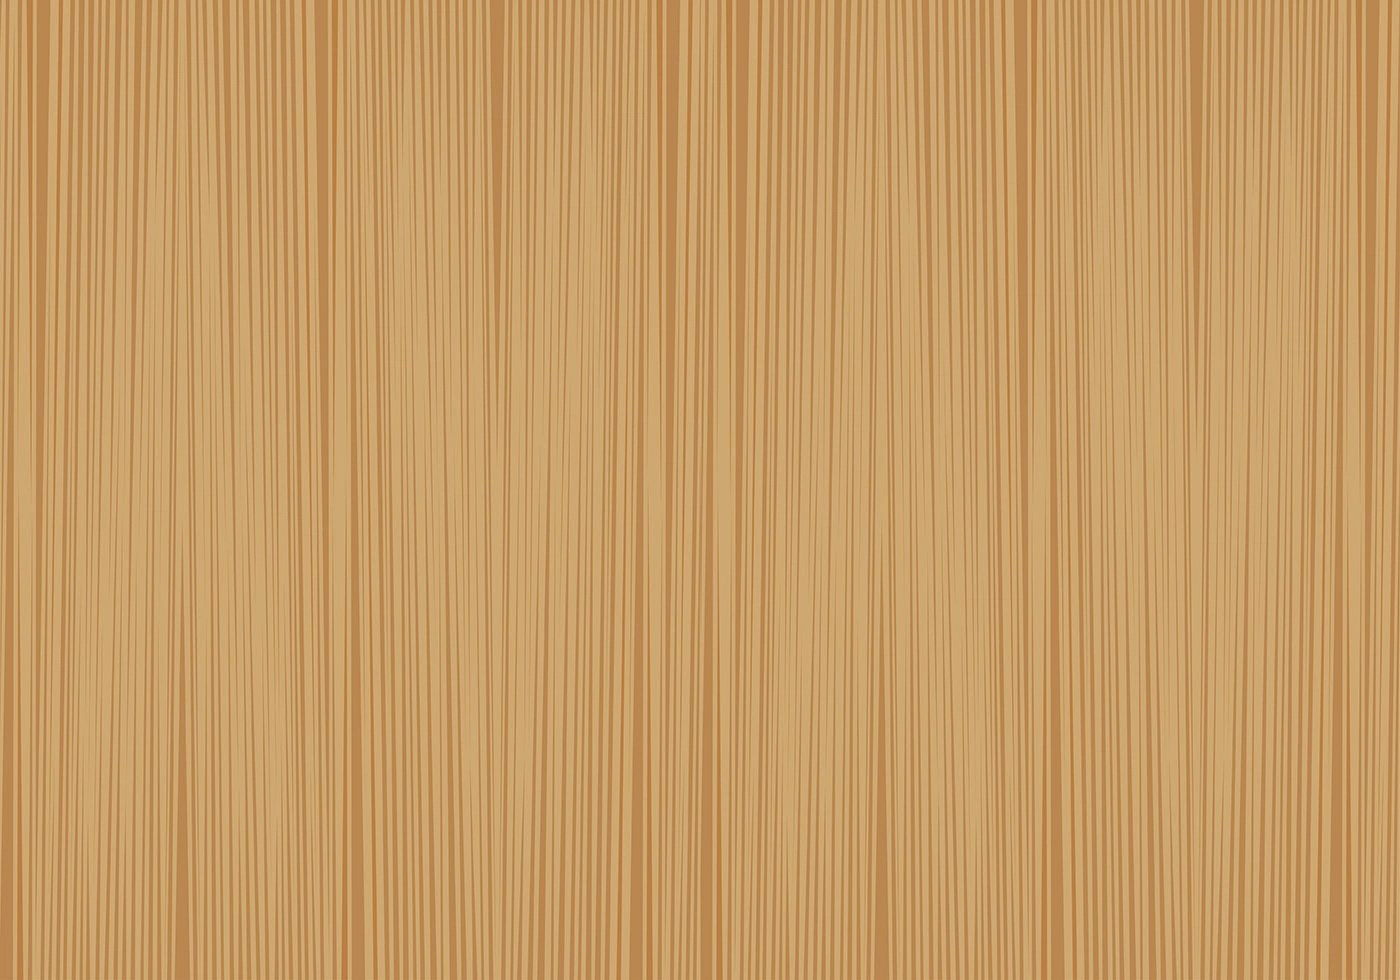 Laminat Set Laminate Background With Wooden Texture - Download Free